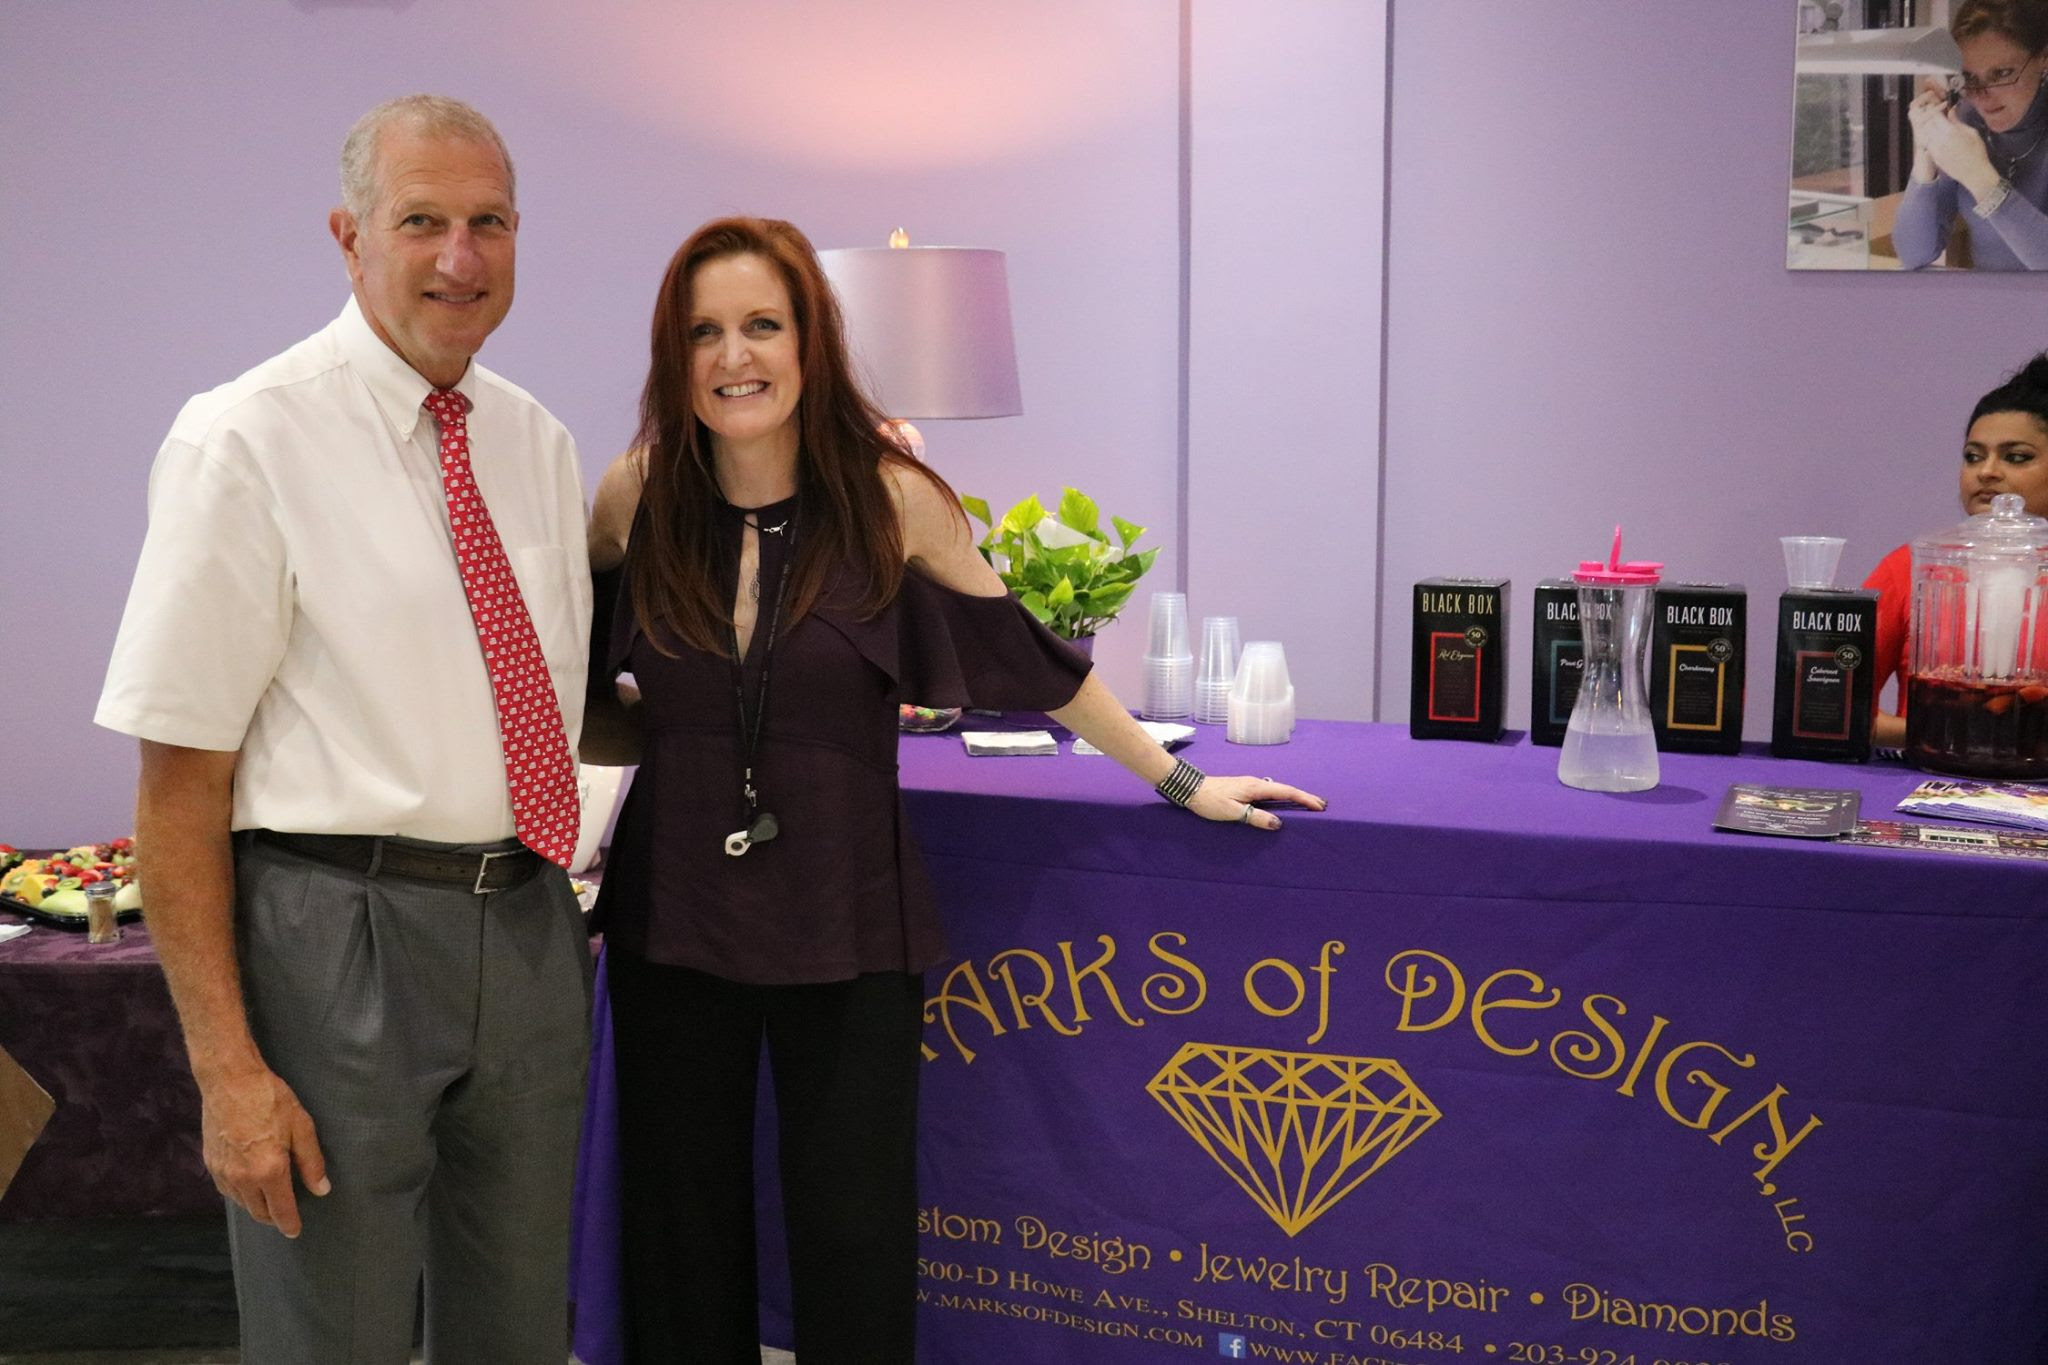 Marks Of Design Grand Opening In Shelton Webe Fm